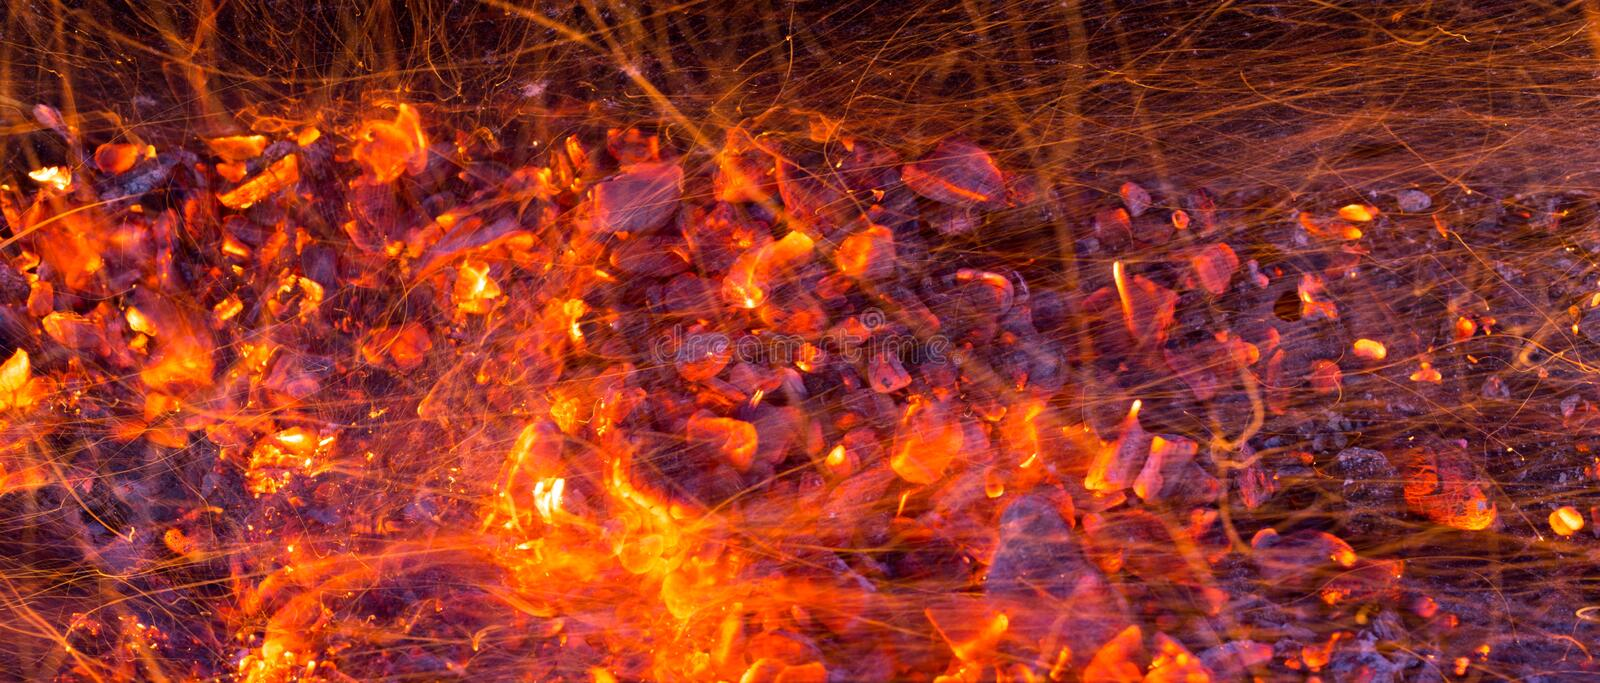 Burning charcoal as background stock photography